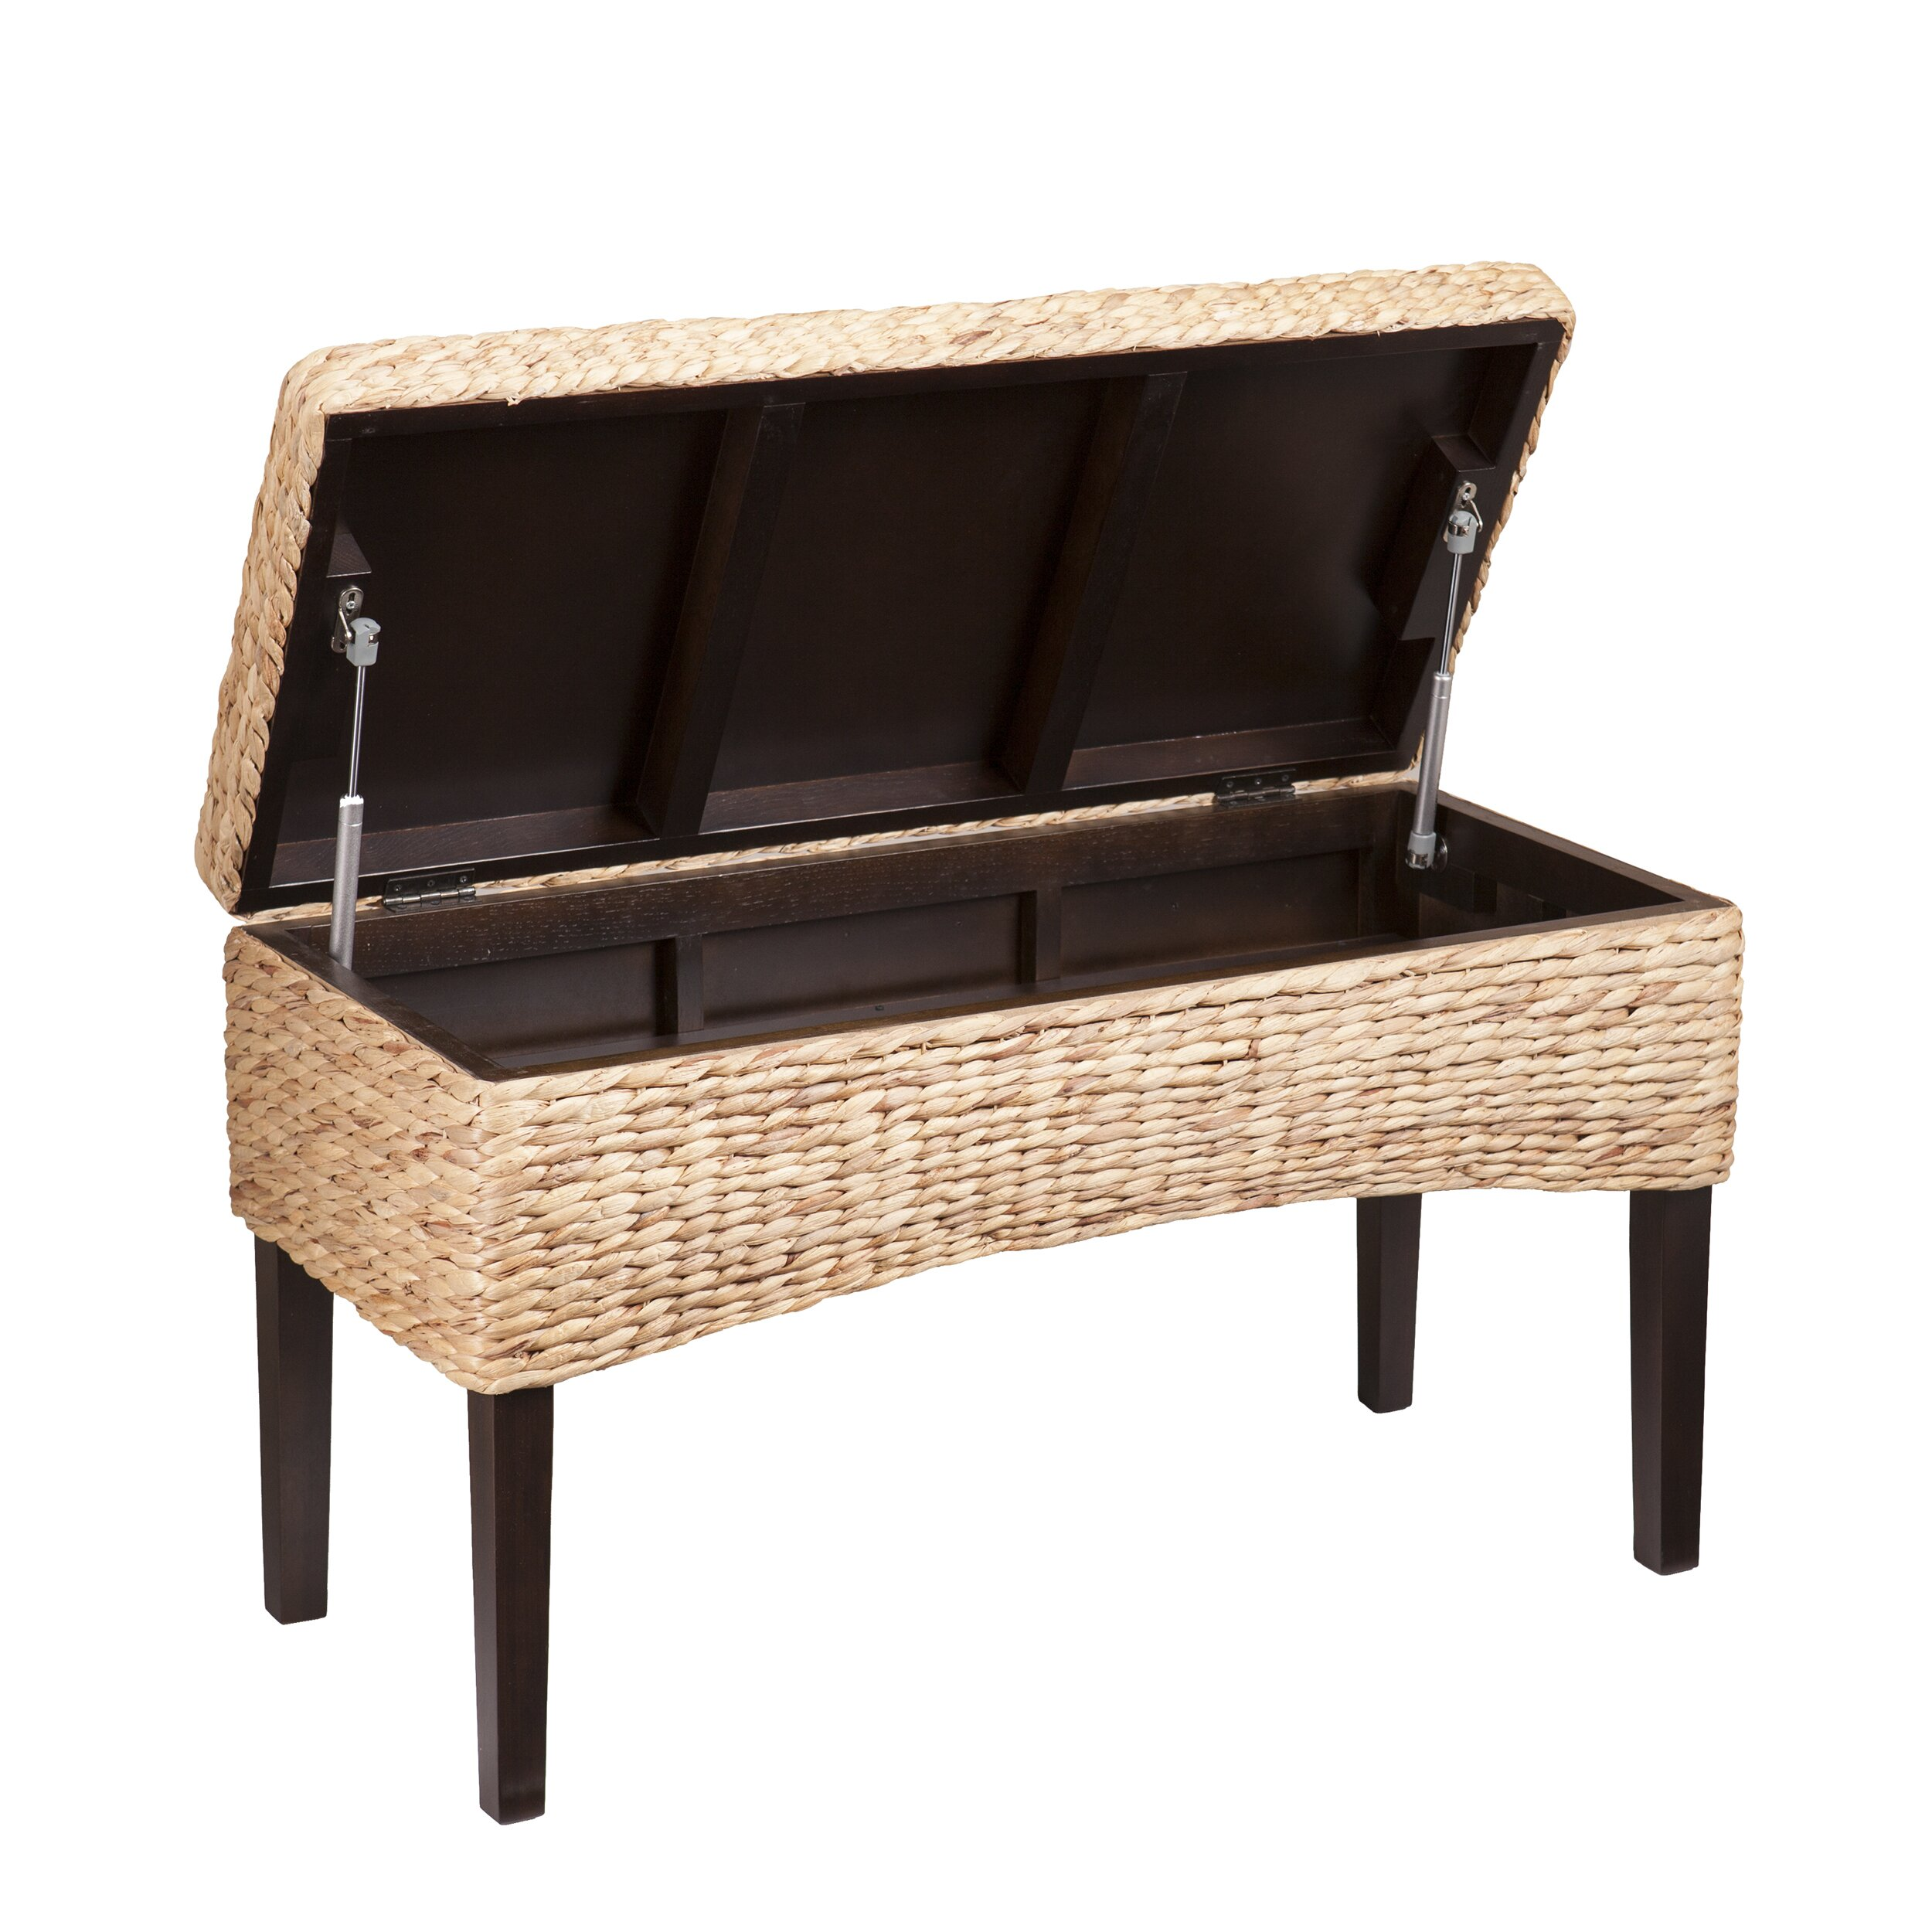 Beachcrest home norwich hyacinth storage bedroom bench reviews wayfair Bedroom storage bench